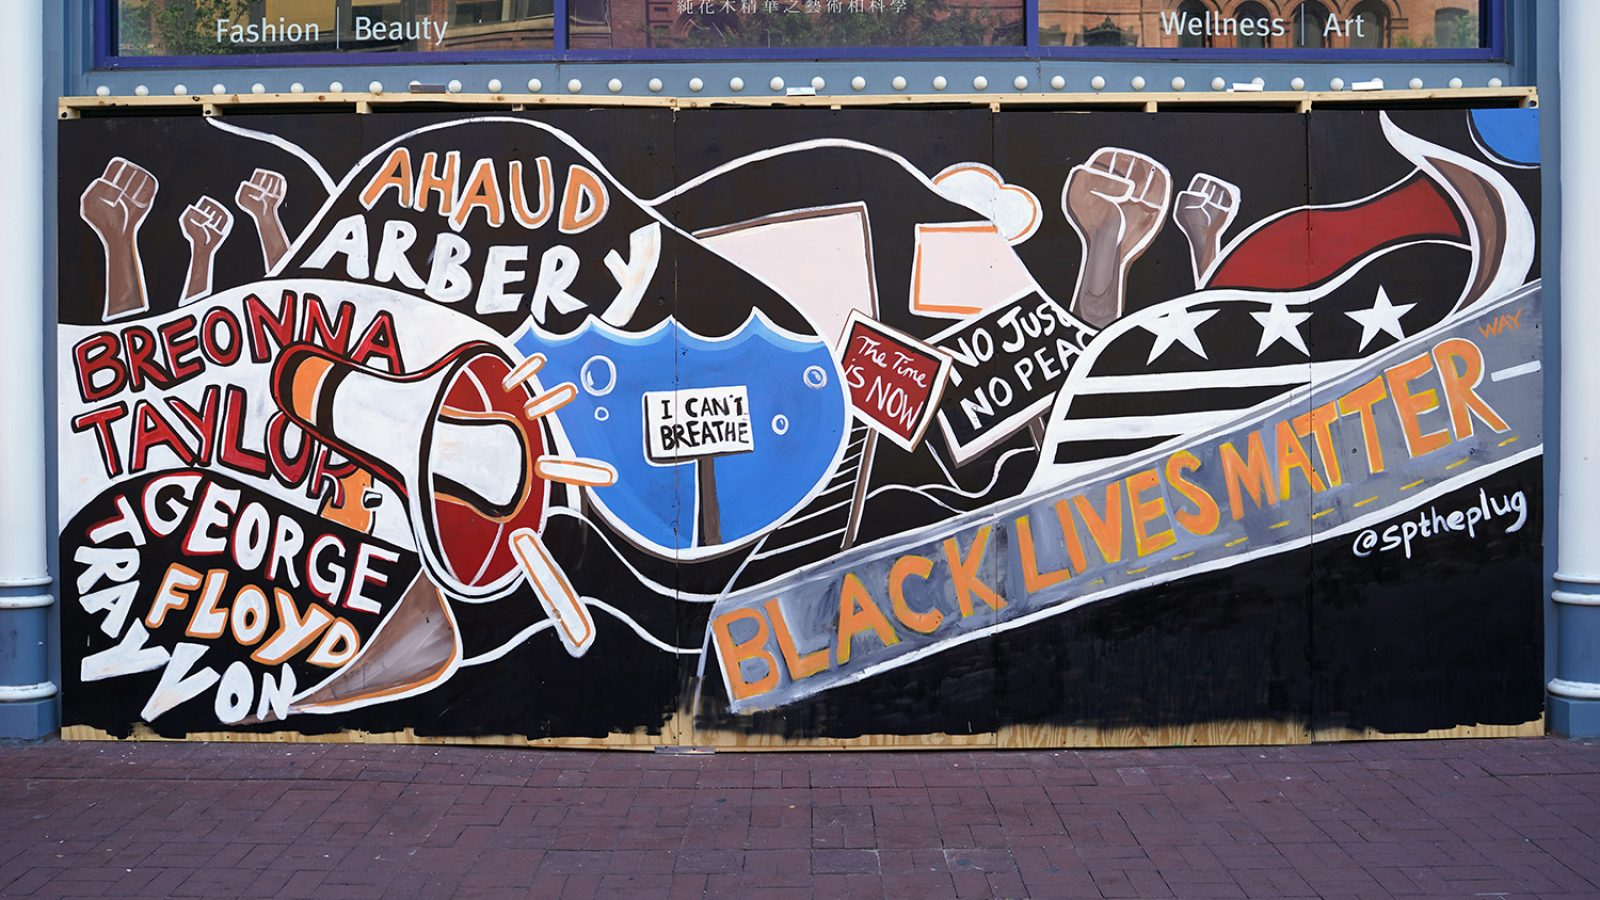 Image of Black Lives Matter mural